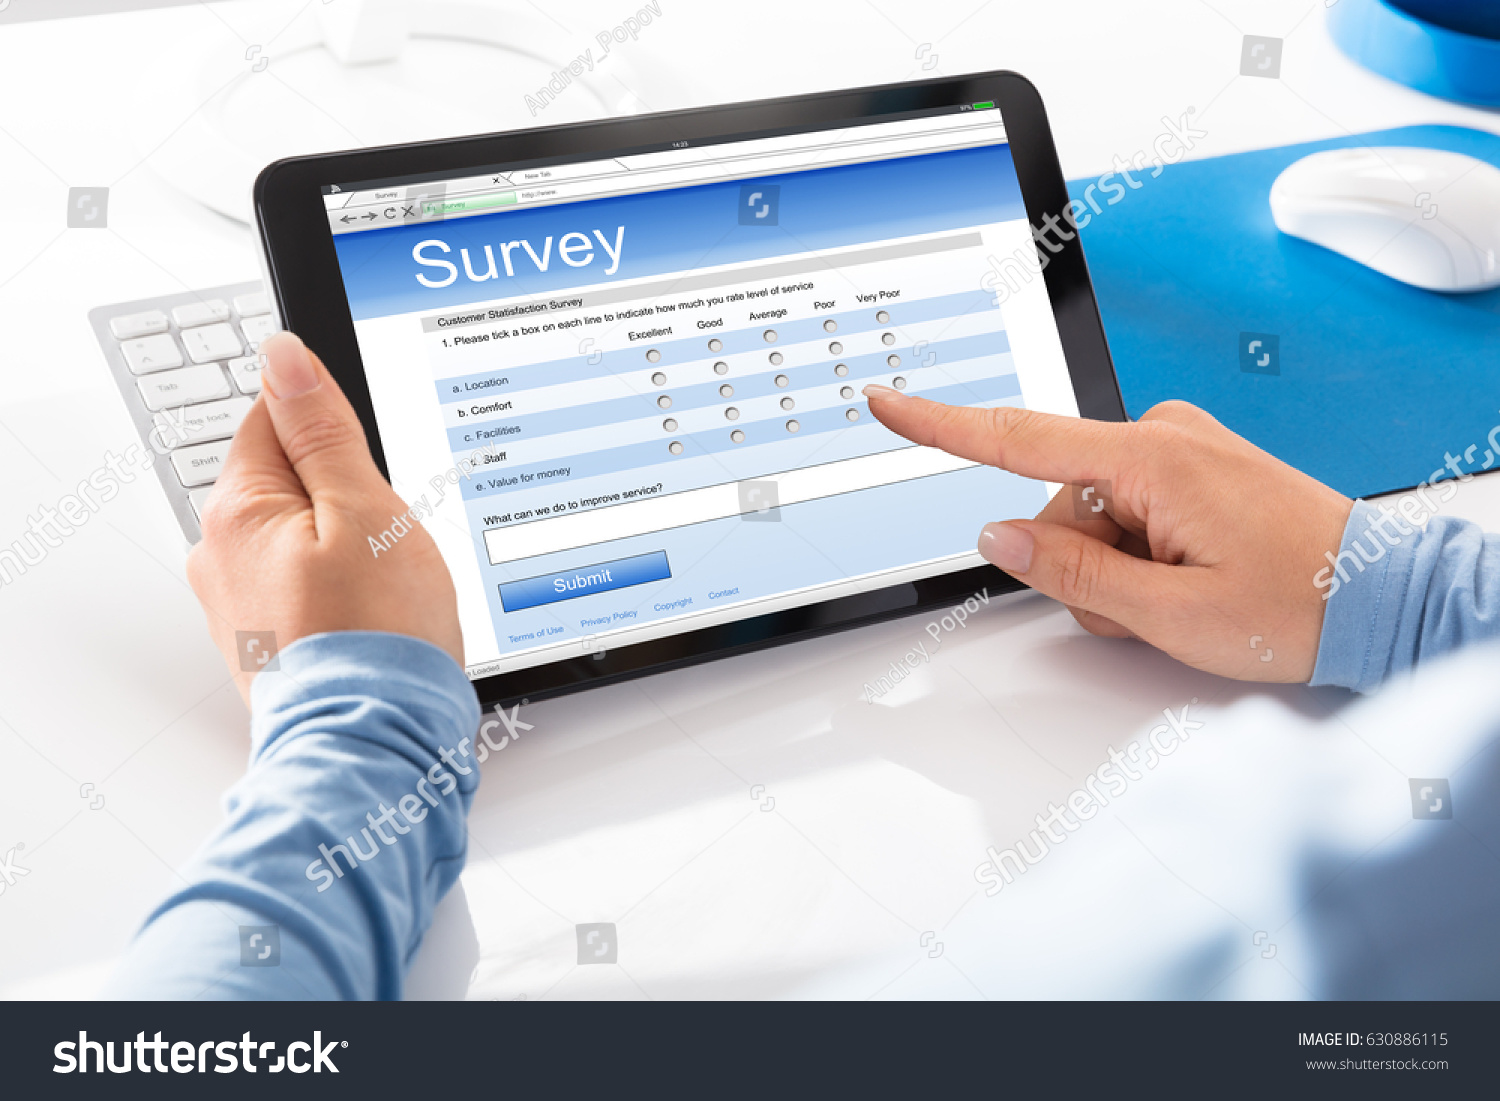 Close-up Of A Woman Filling Online Survey Form On Digital Tablet #630886115